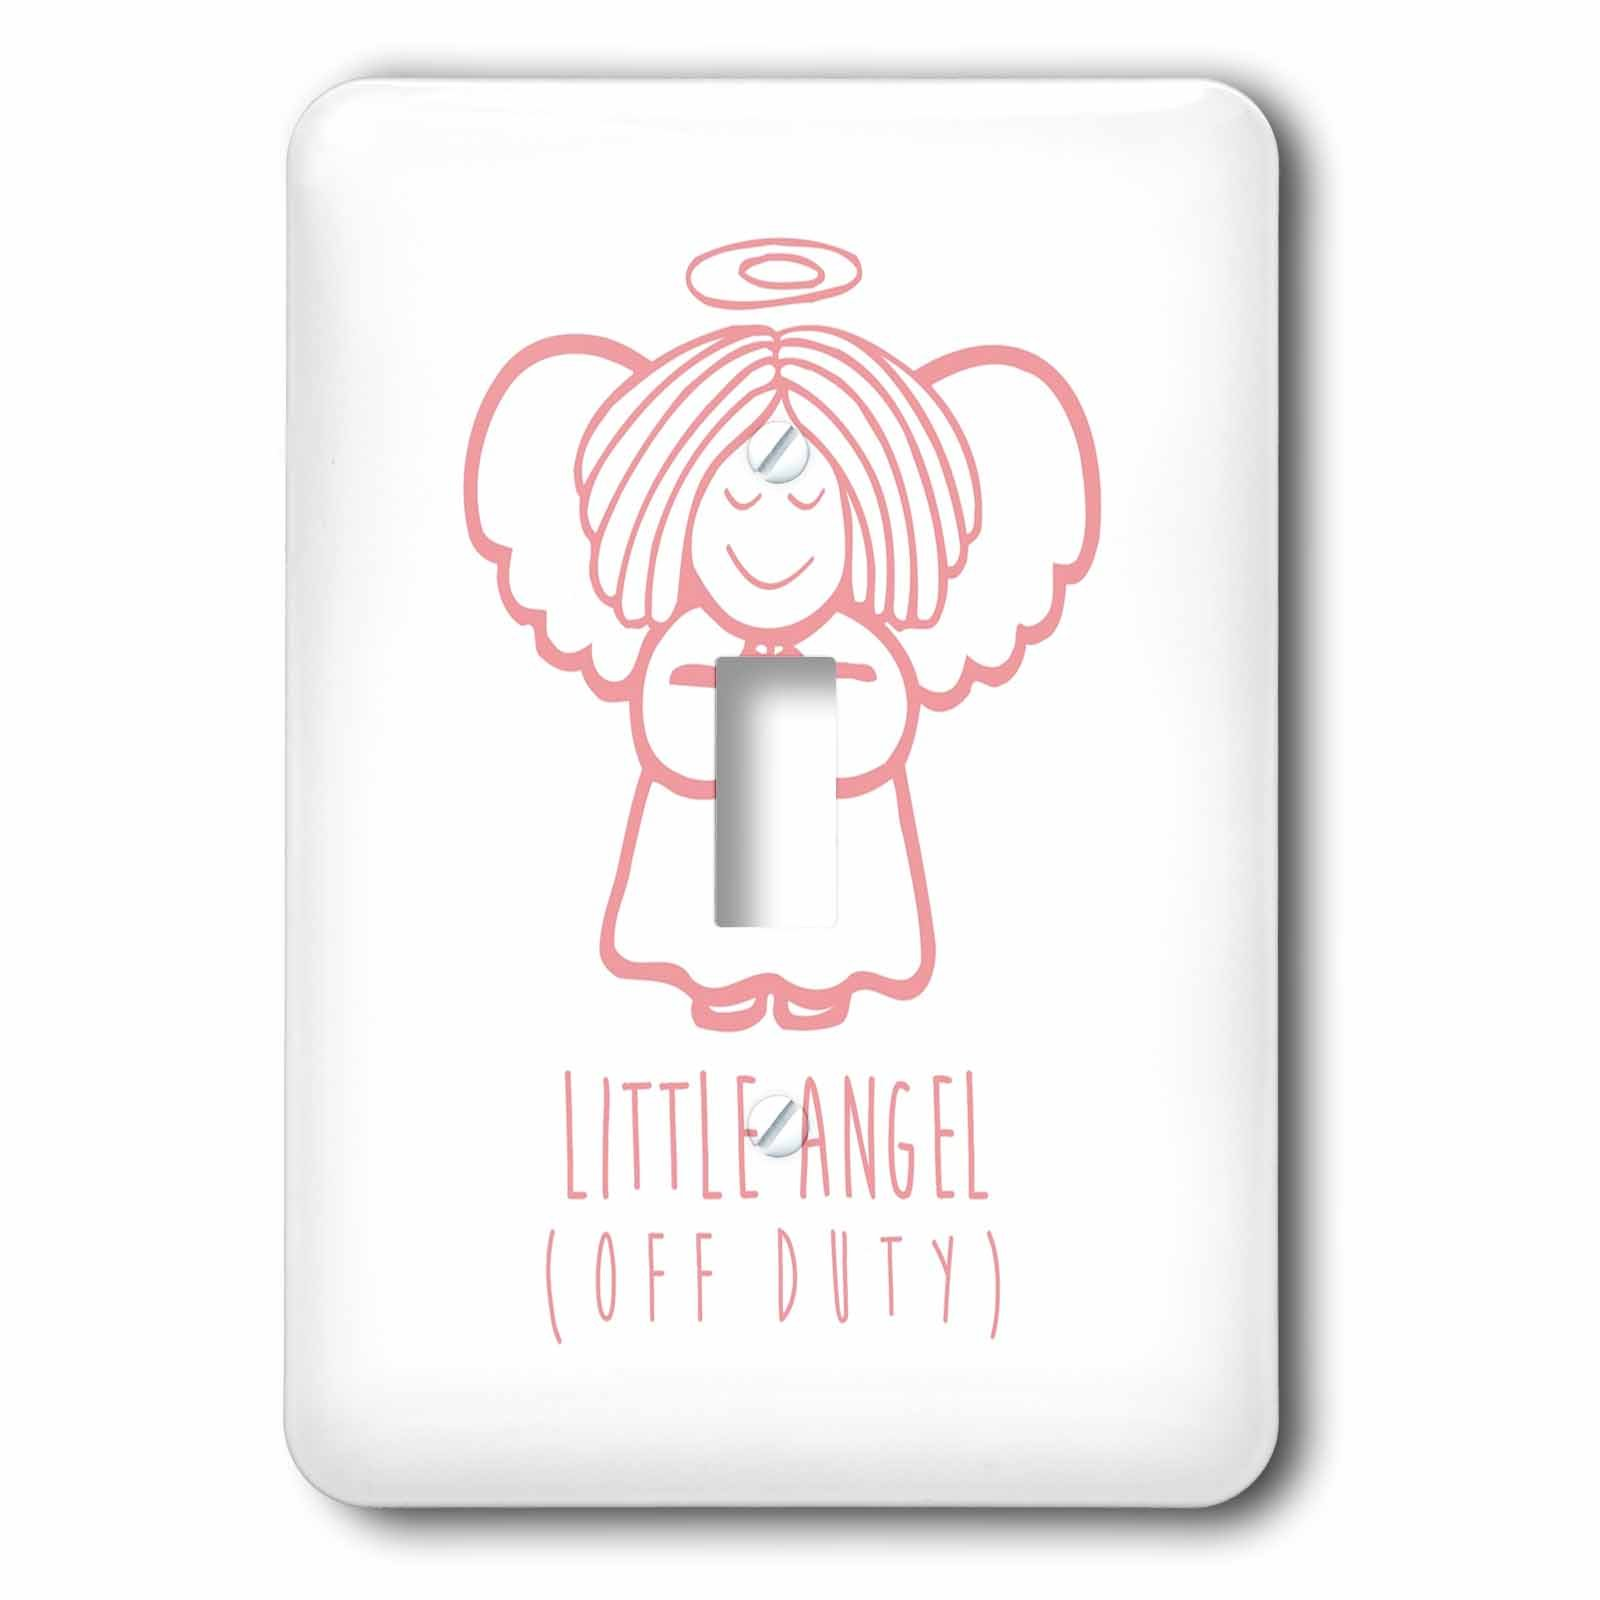 3dRose Russ Billington Designs - Little Angel- Off Duty- Cute Angel drawing in Pink and White - Light Switch Covers - single toggle switch (lsp_261896_1) by 3dRose